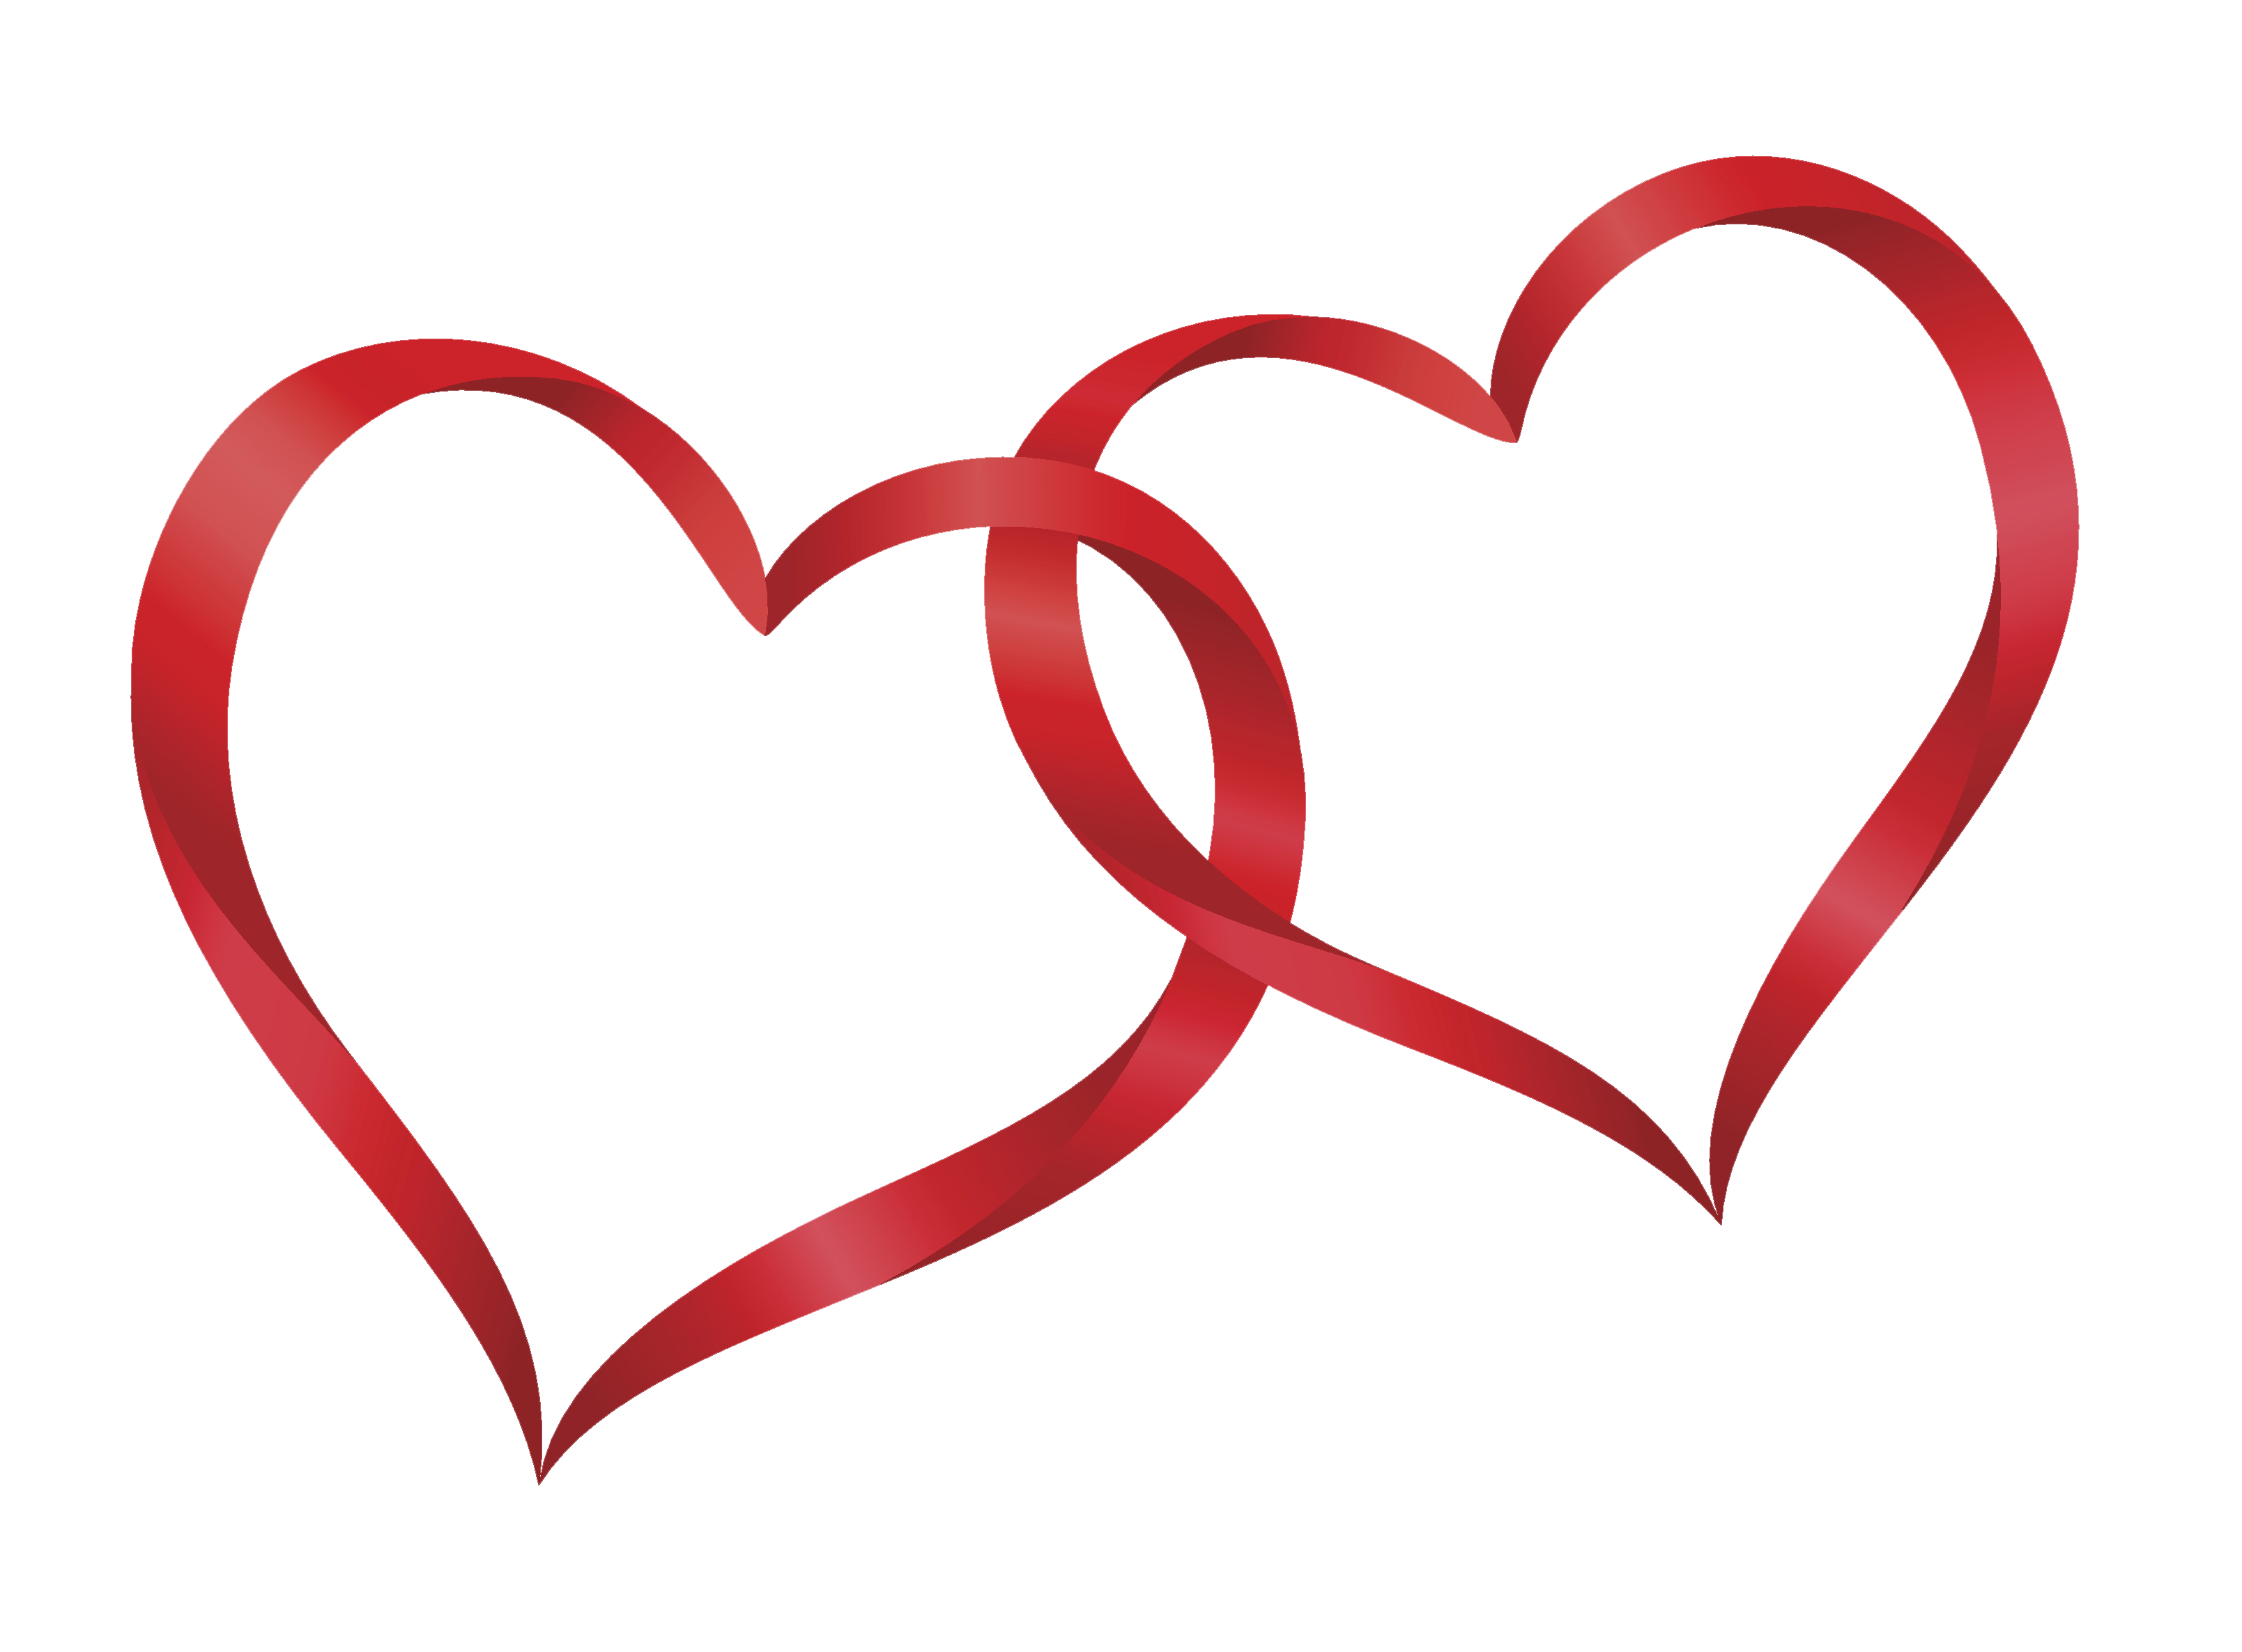 Hearts png images. Index of wp content